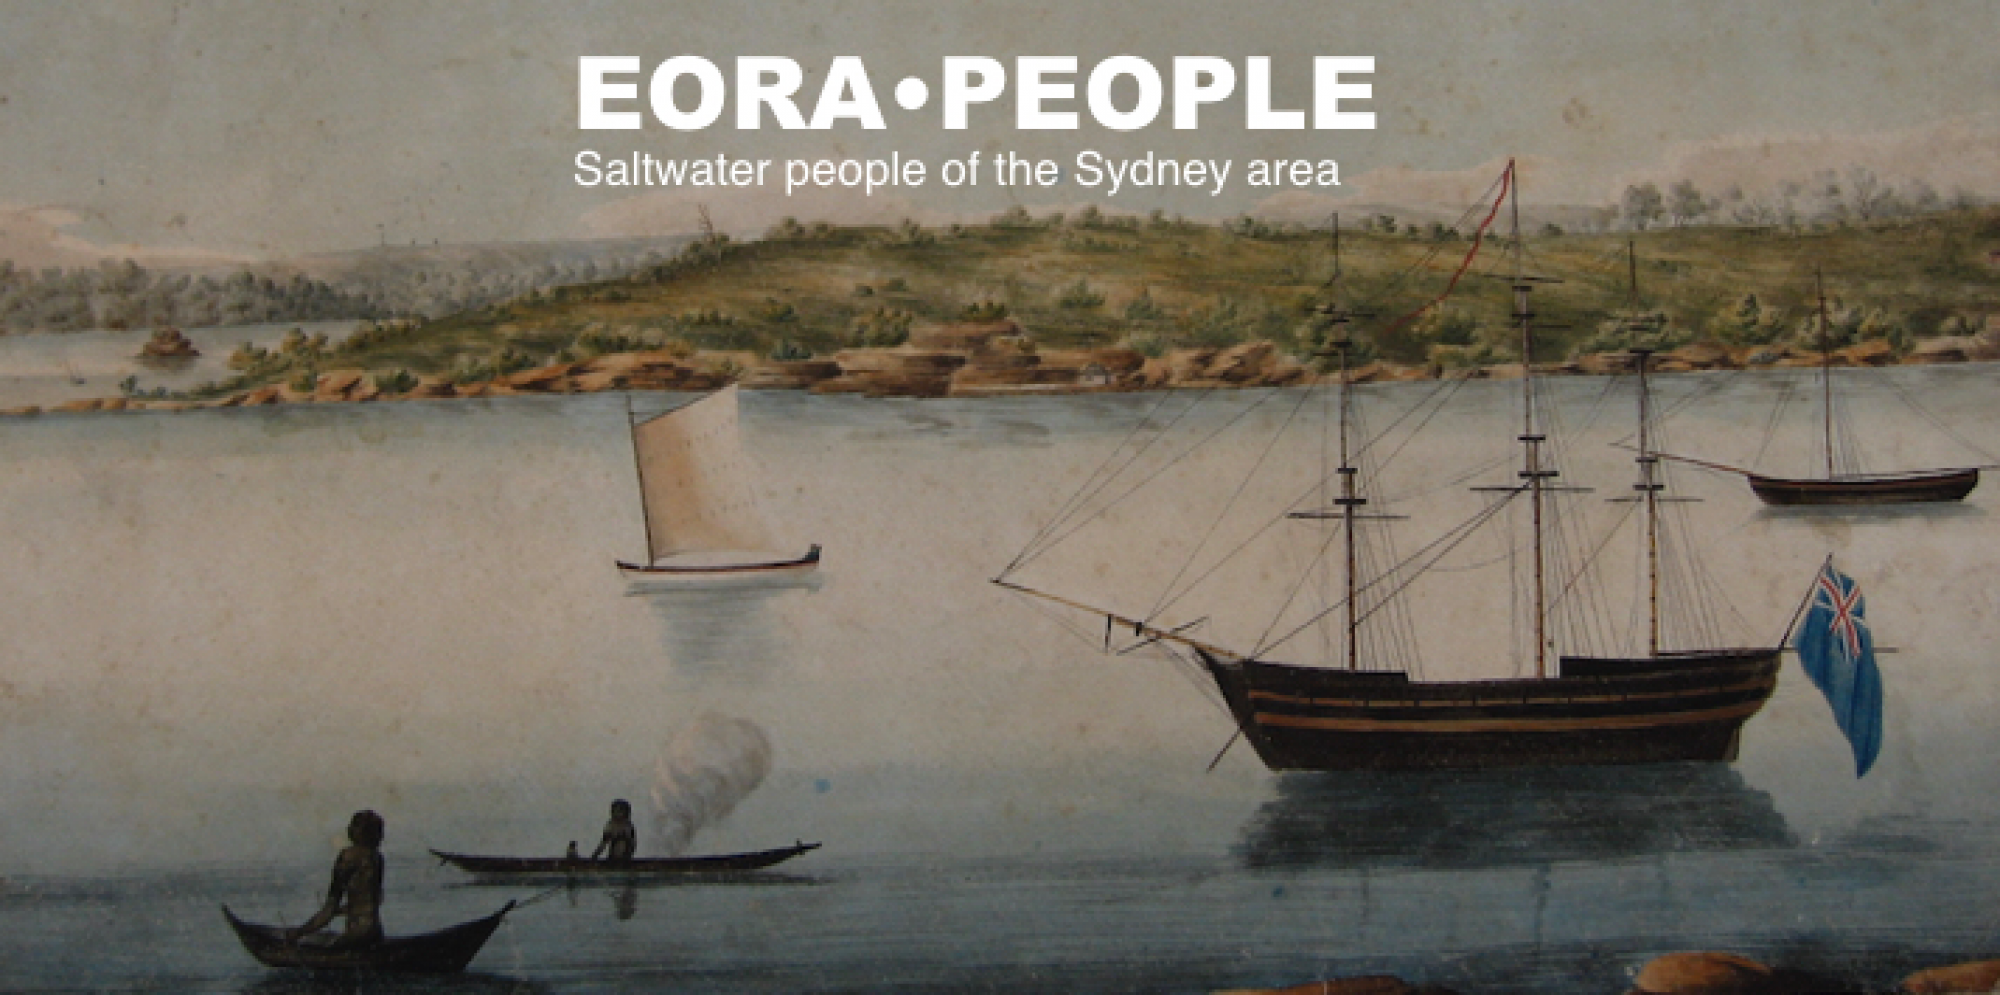 Eora•People